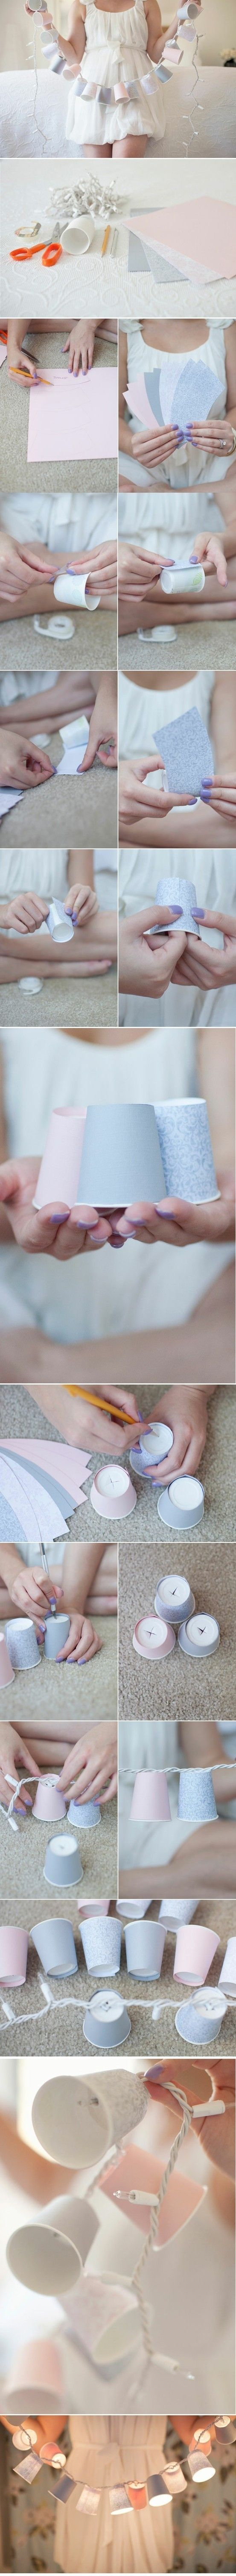 Cover Dixie cups with fancy paper to make small shades for string lights. | 46 Awesome String-Light DIYs For Any Occasion